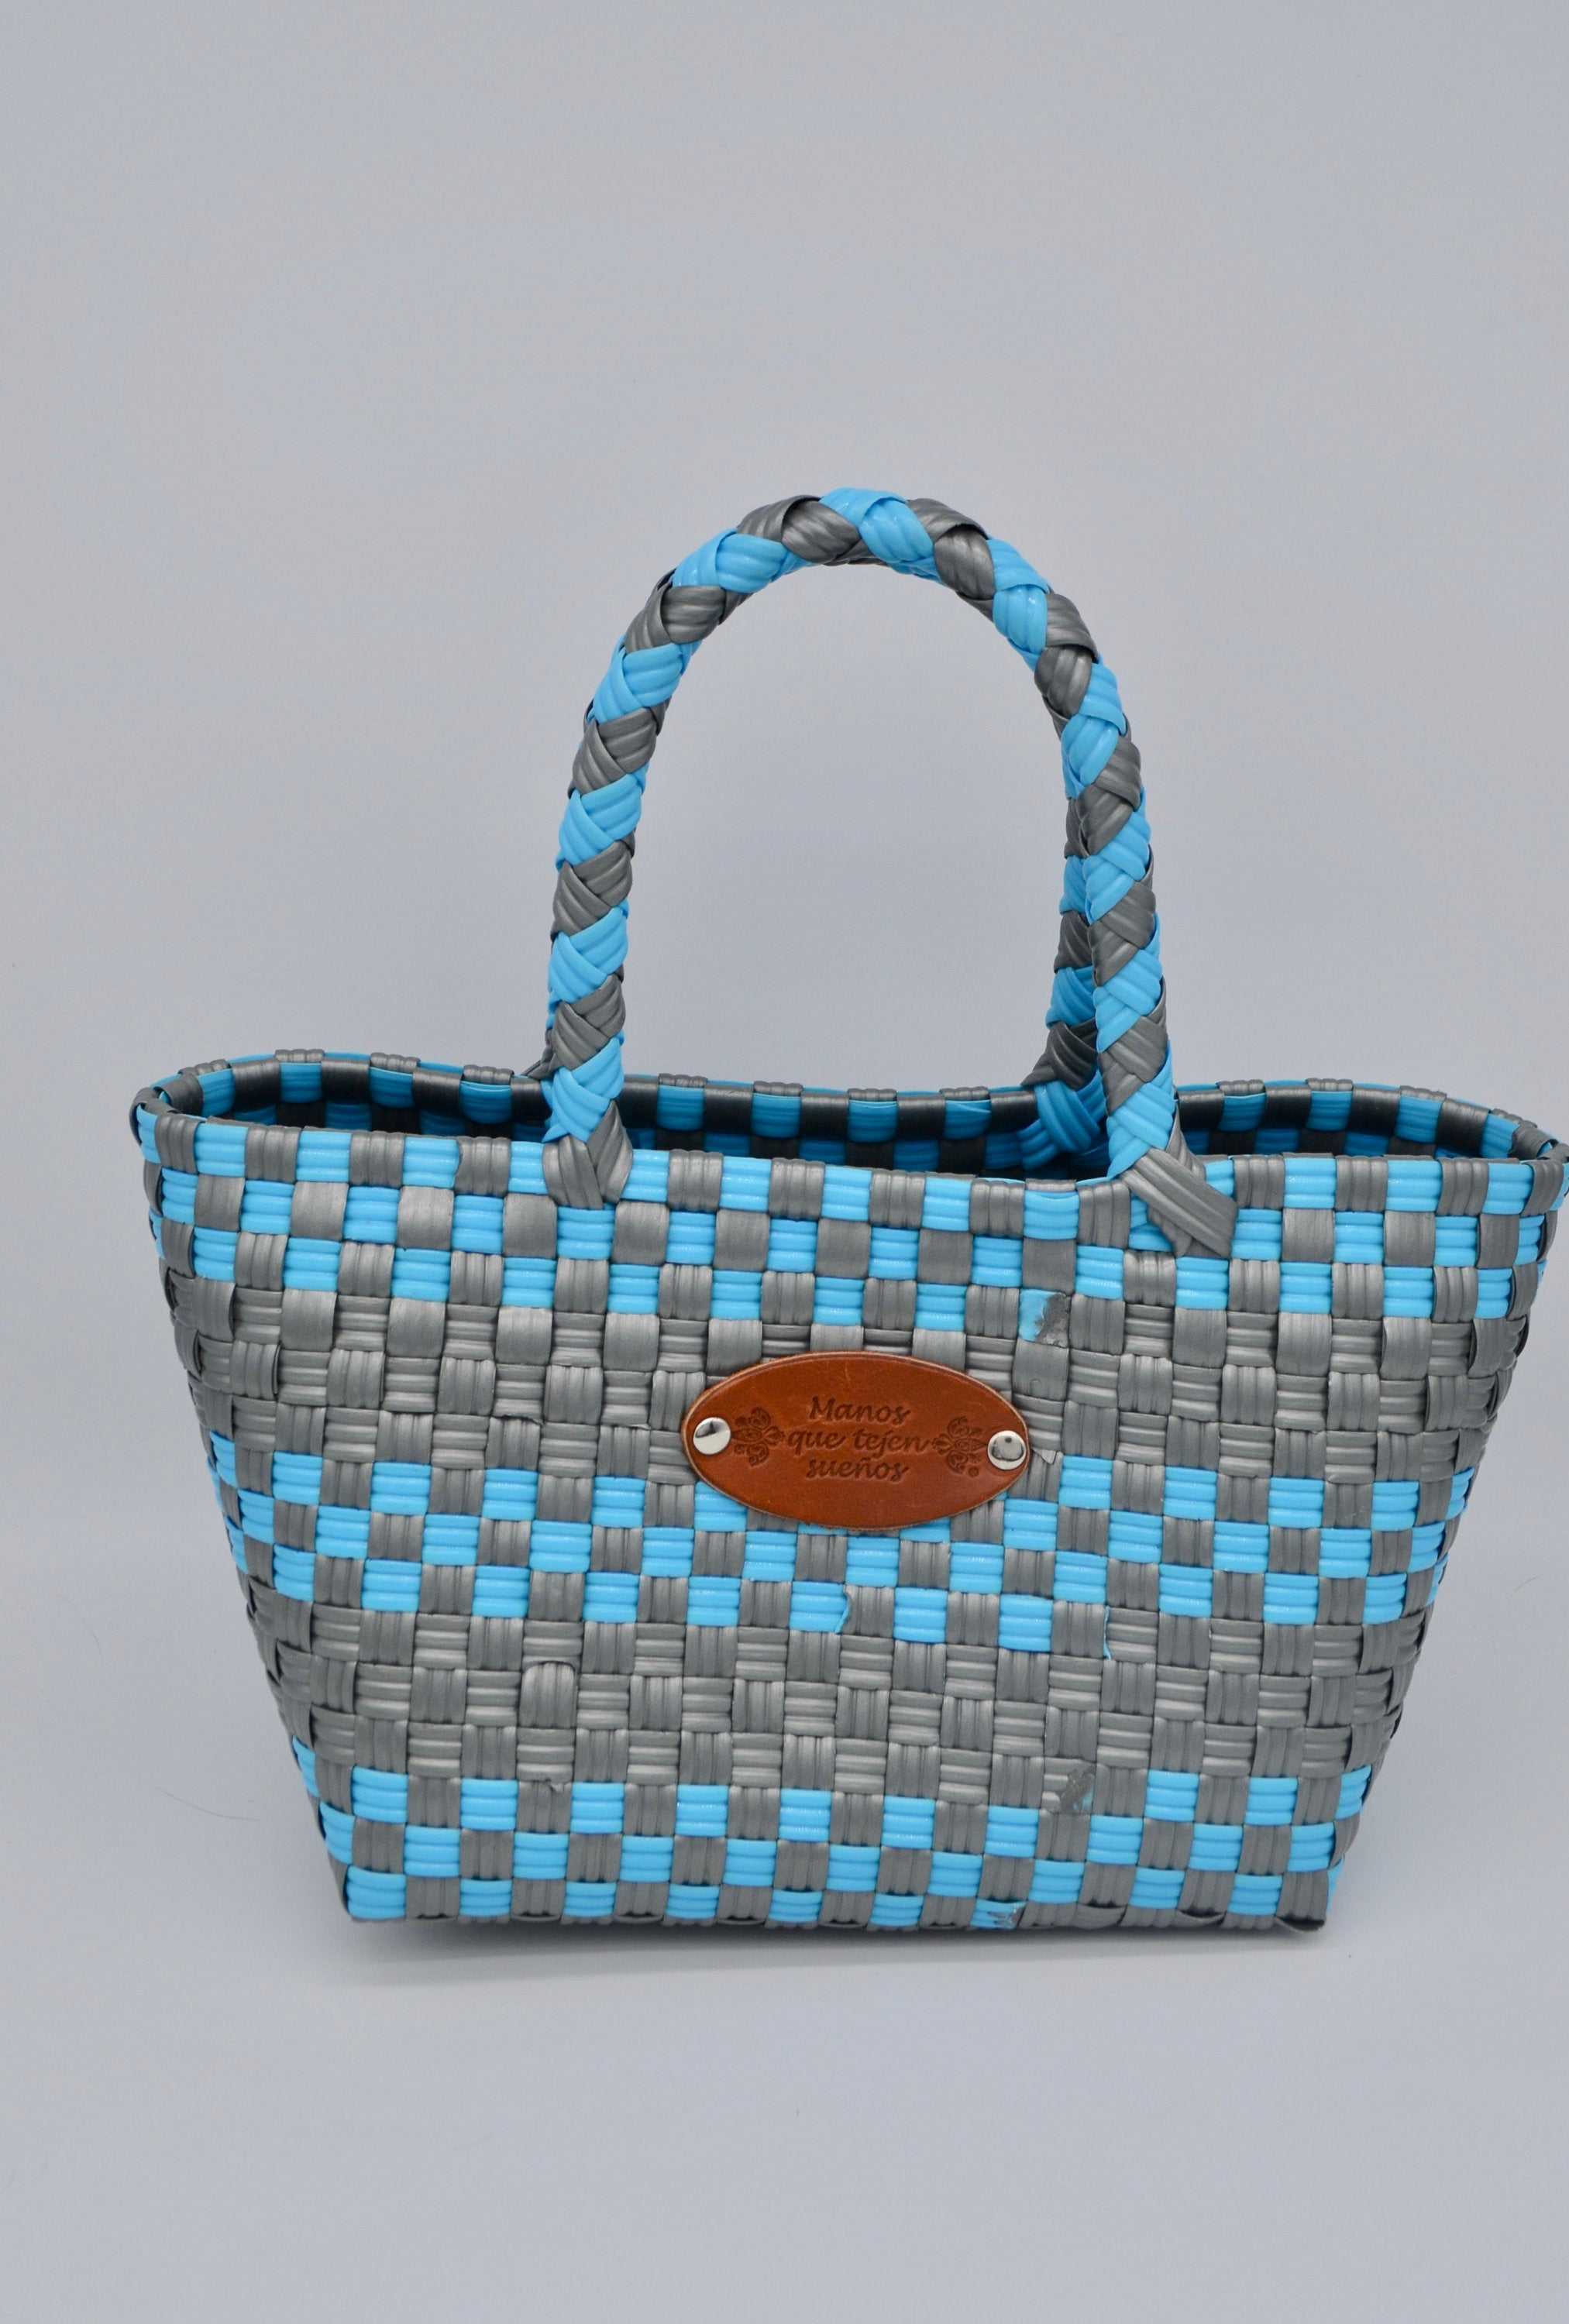 Mini Carry On Manos Que Tejen Suenos Mexican Plastic Woven Bag Weaving Straw Handbag Summer